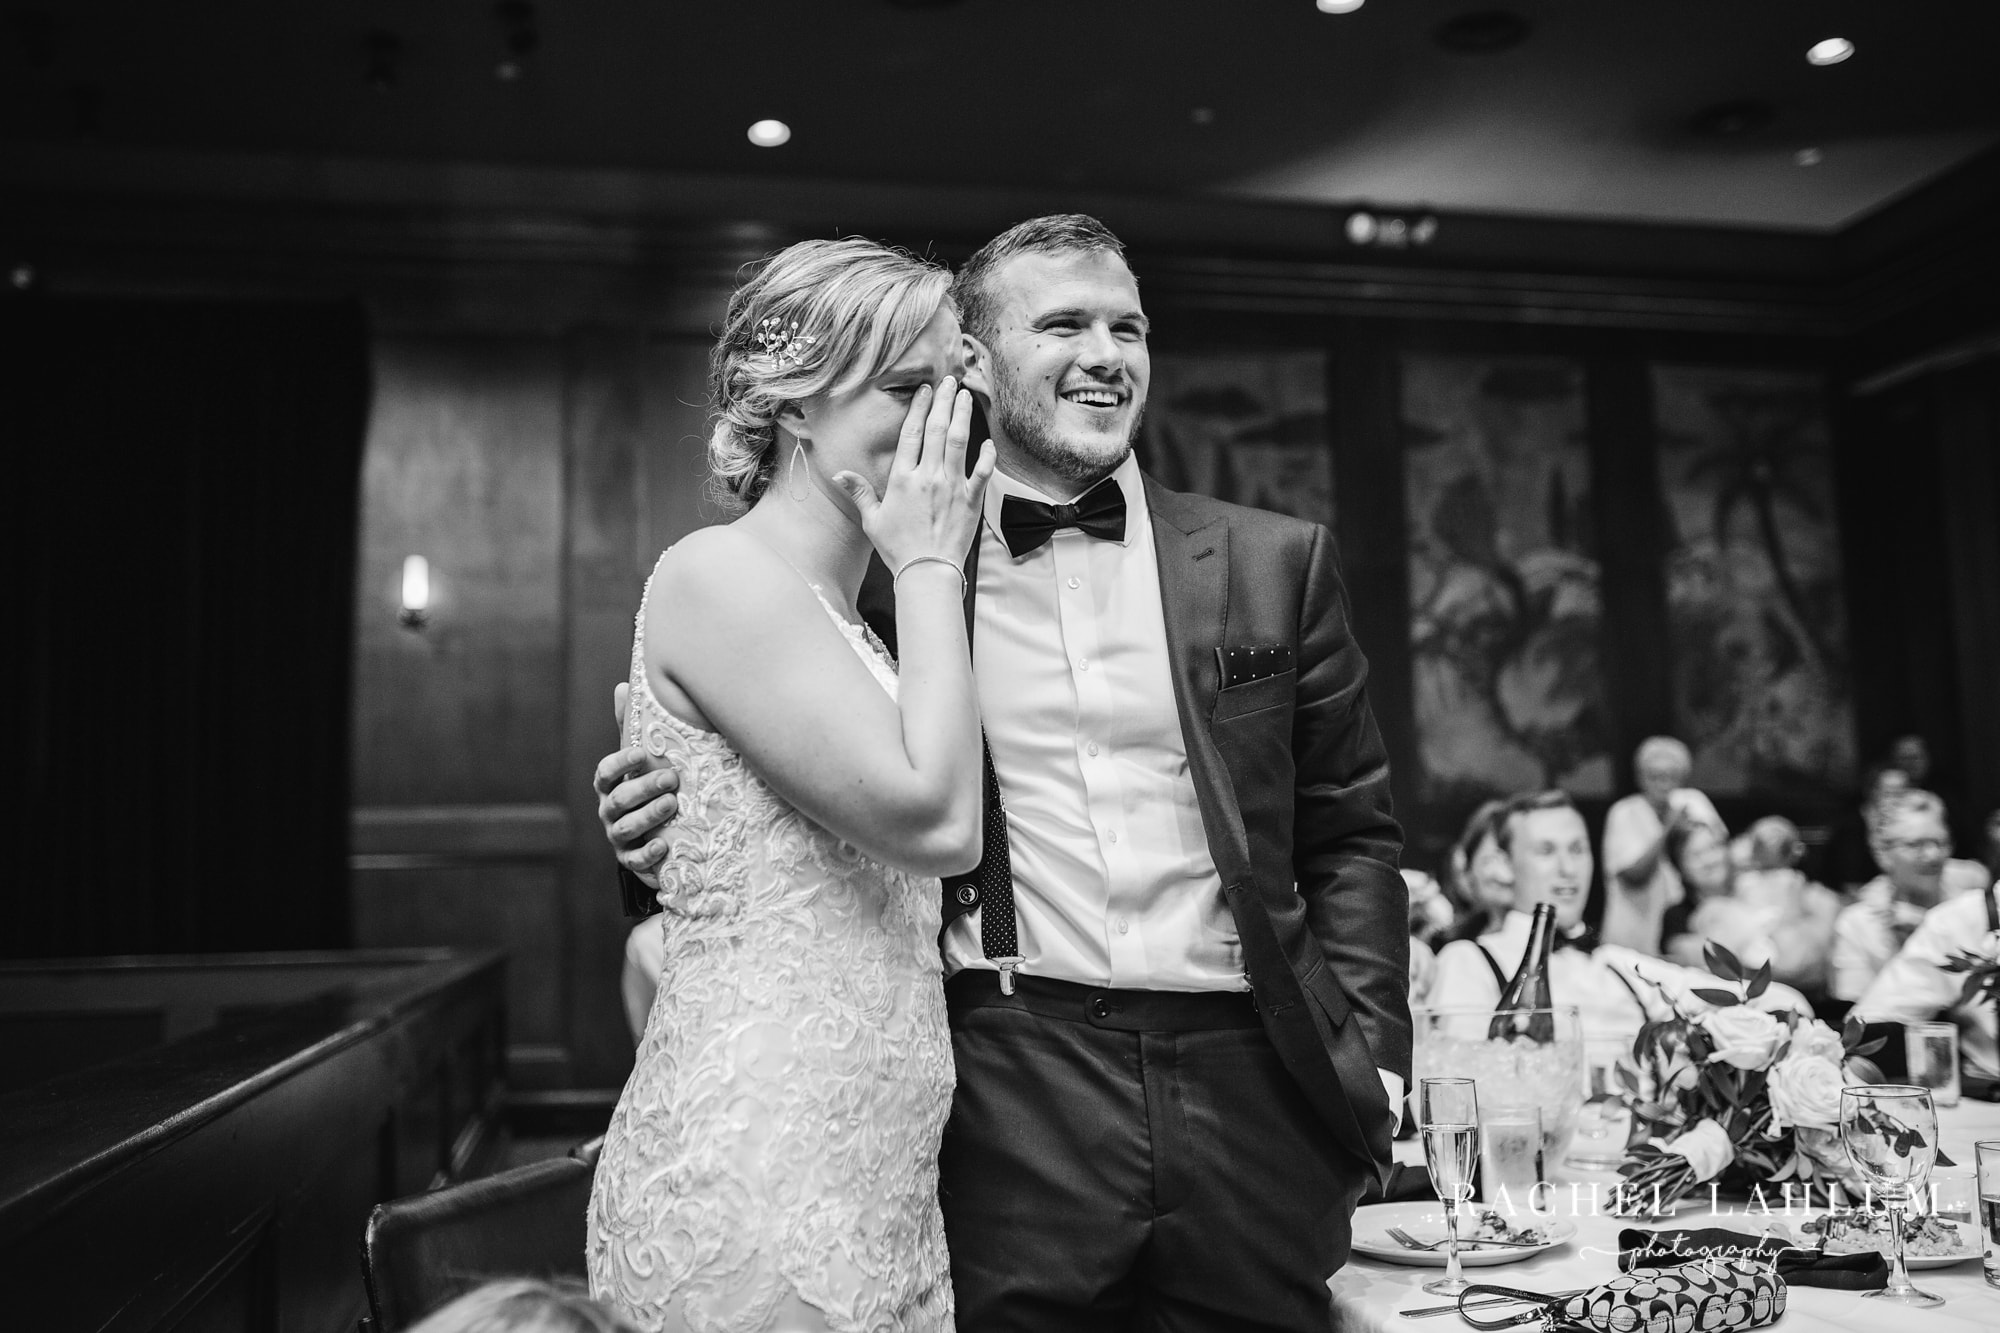 Groom embraces bride as she sheds tears during Golden Valley wedding reception.